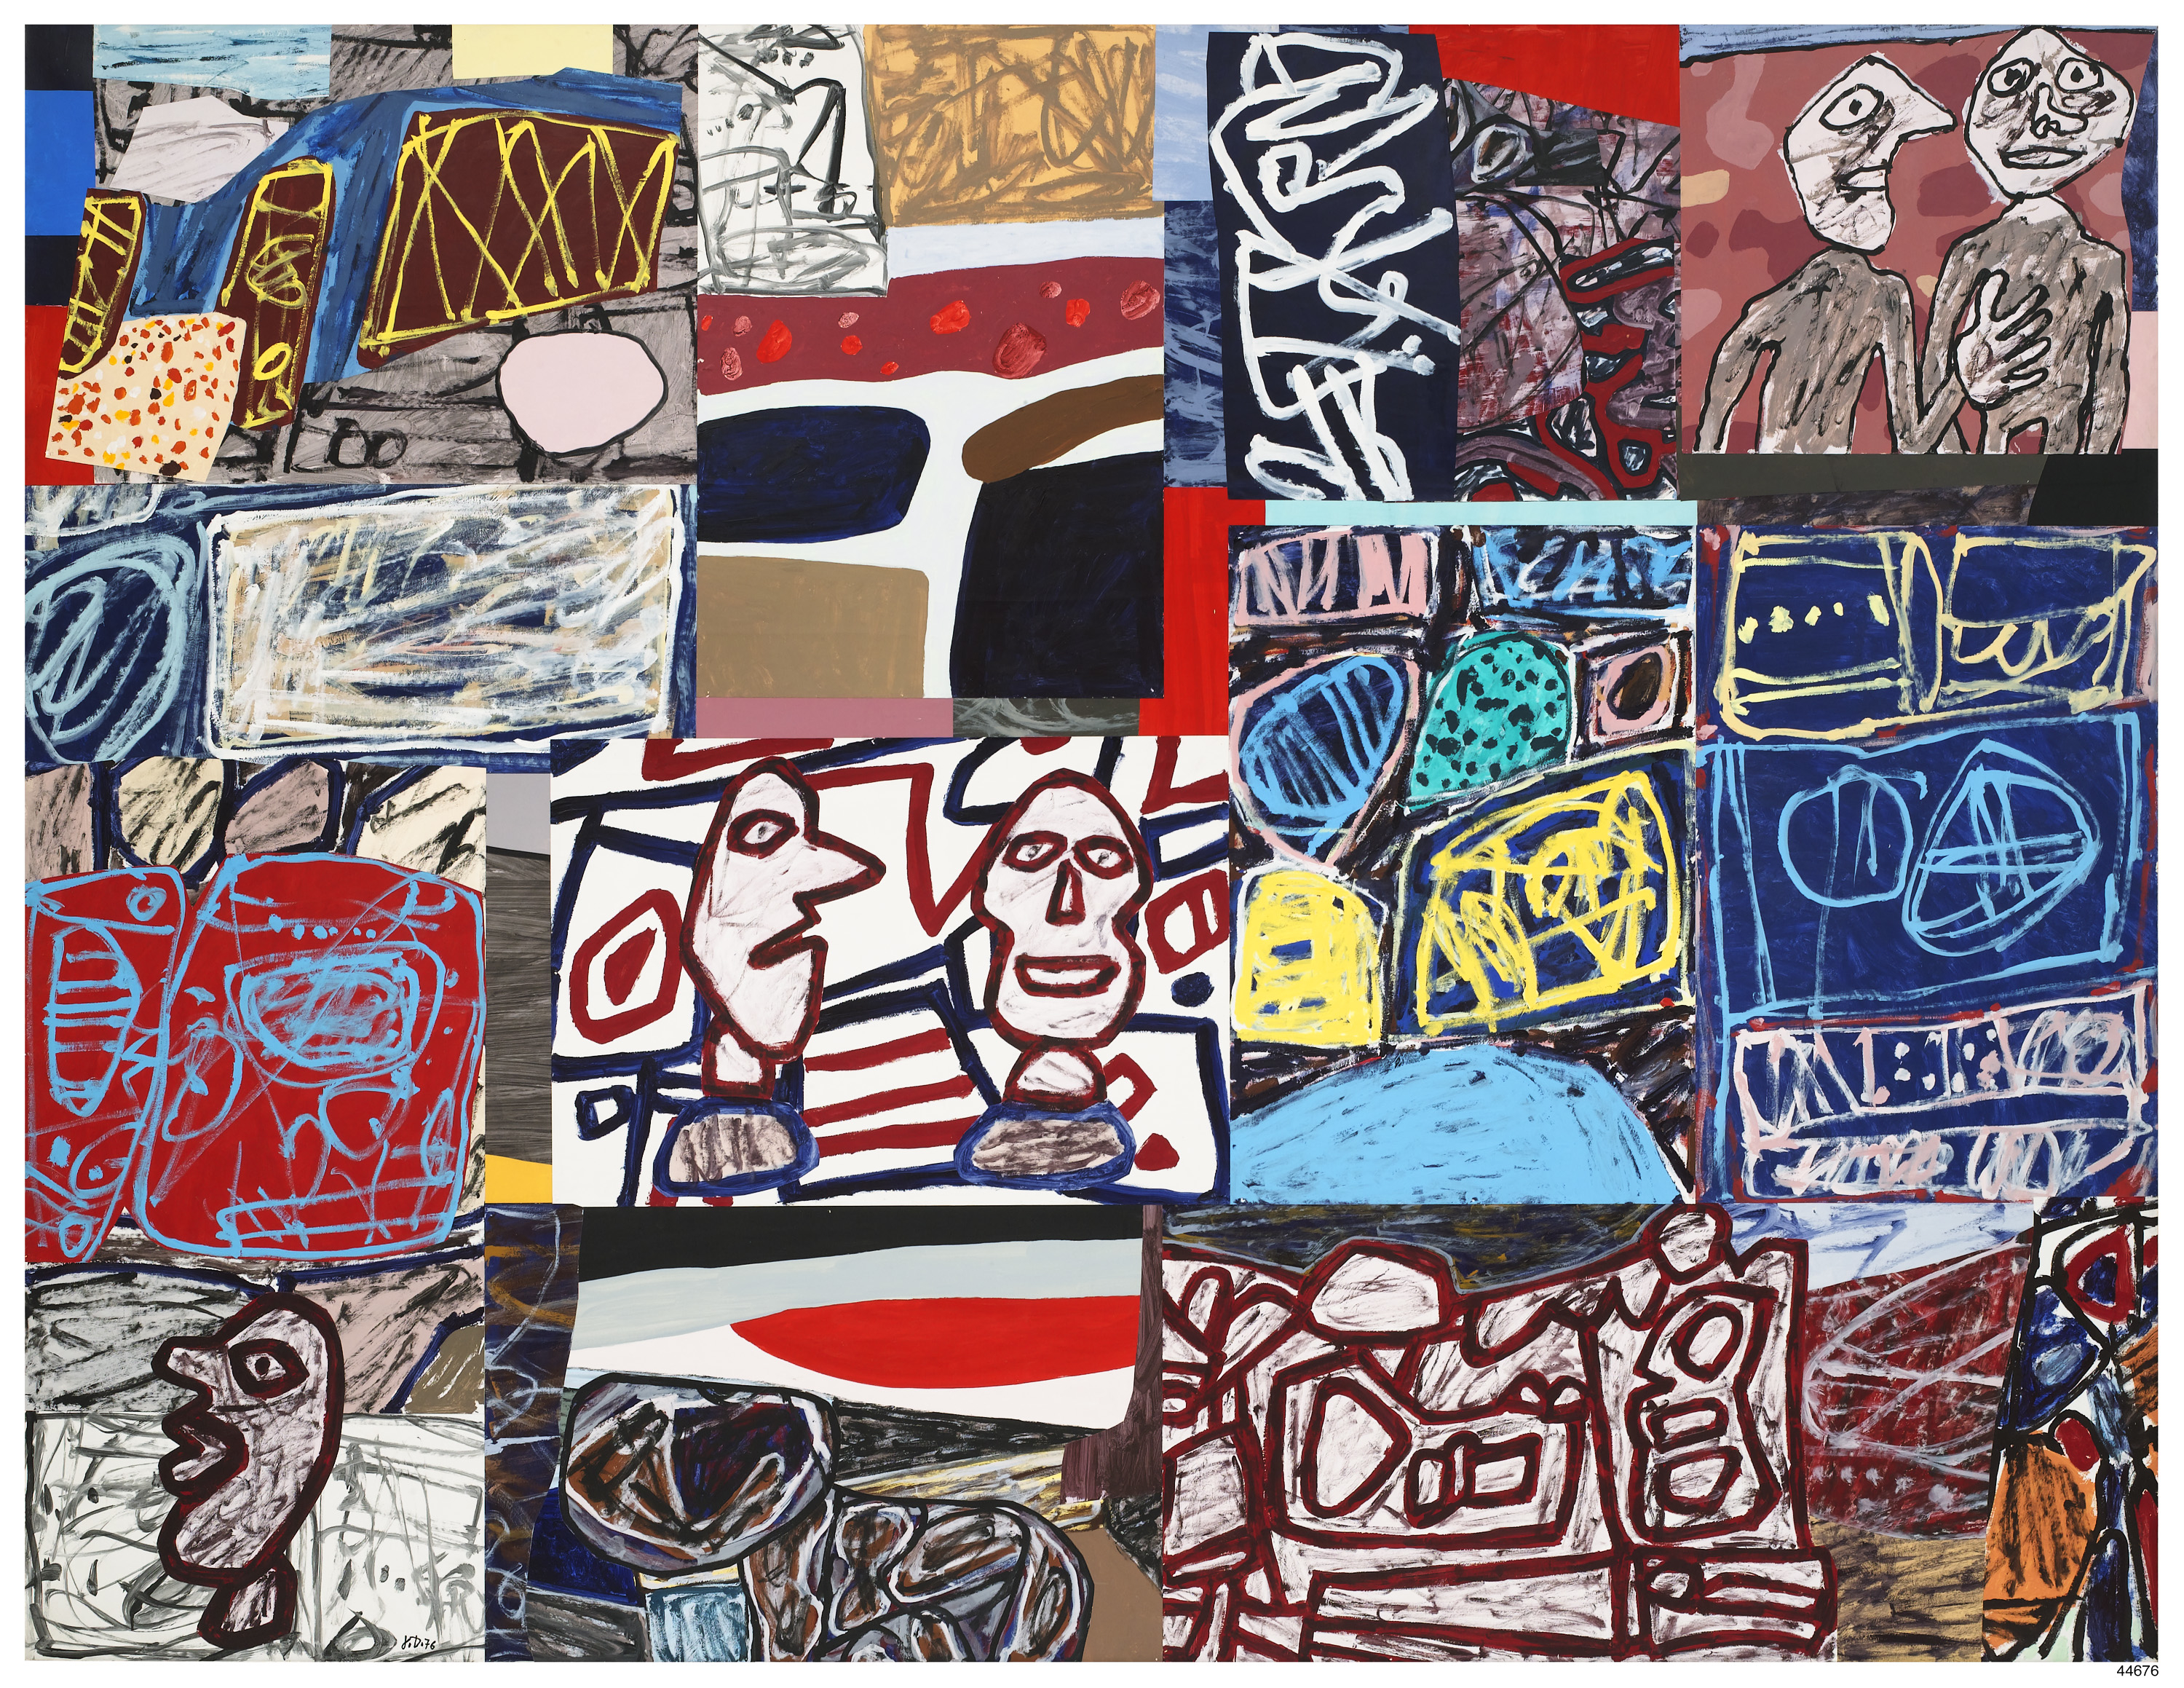 Jean Dubuffet, 'Fête villageoise,' 1976, acrylic and collage on paper mounted on canvas